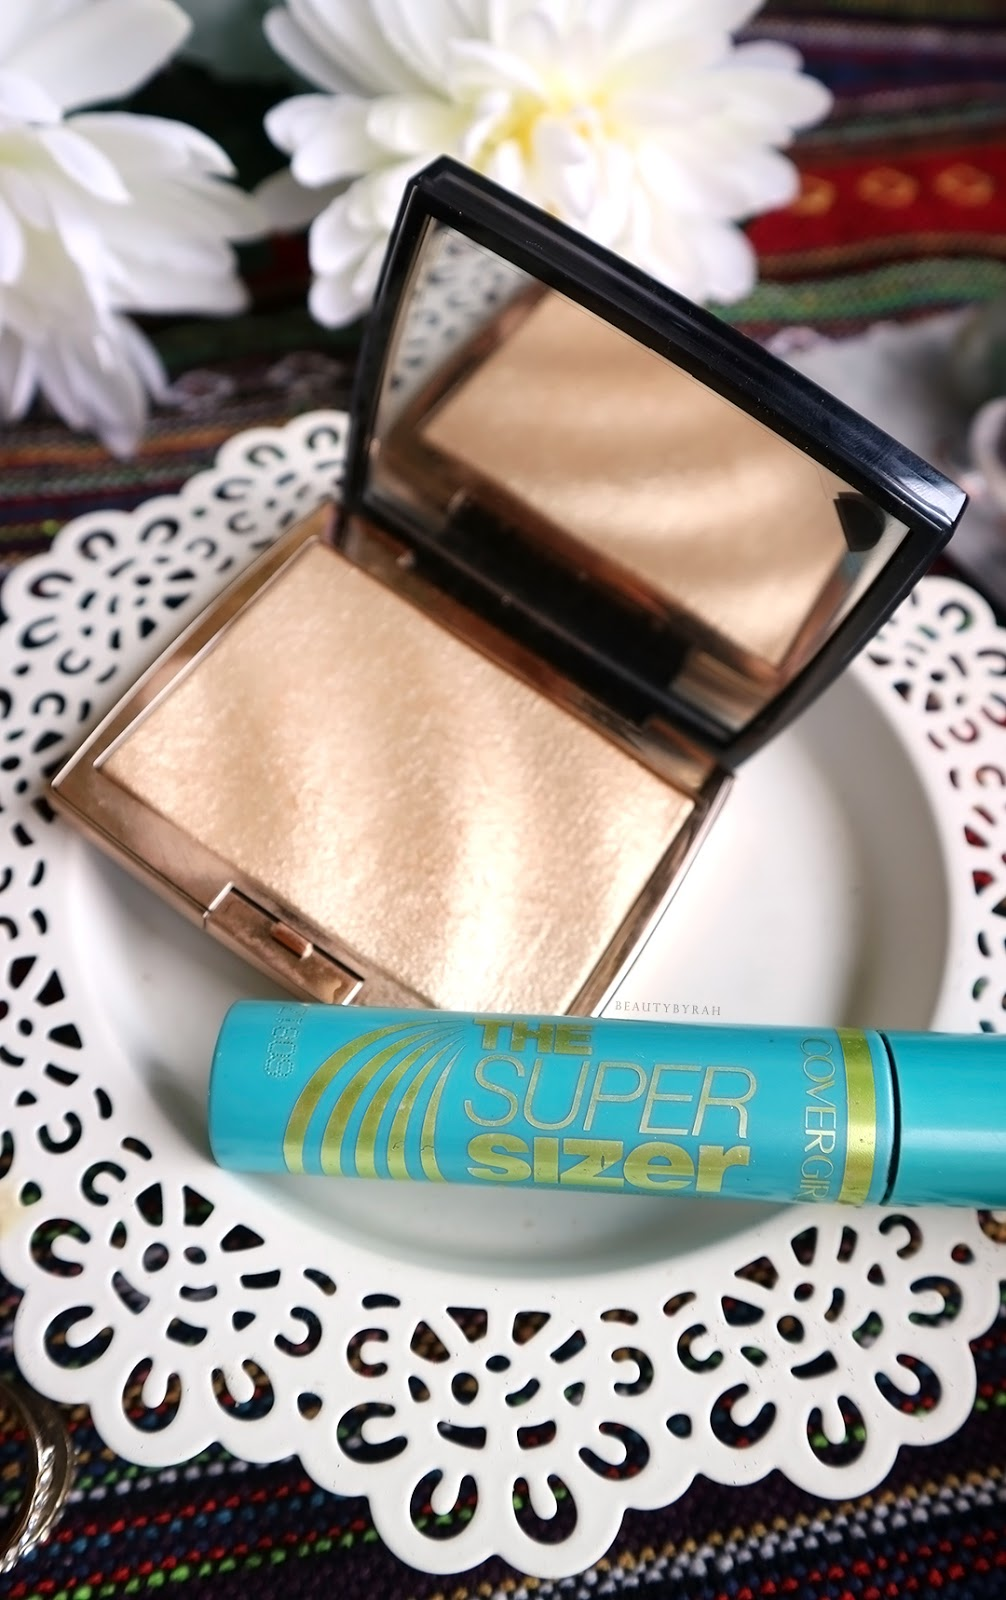 Covergirl super sizer mascara and ABH amrezy highlighter review